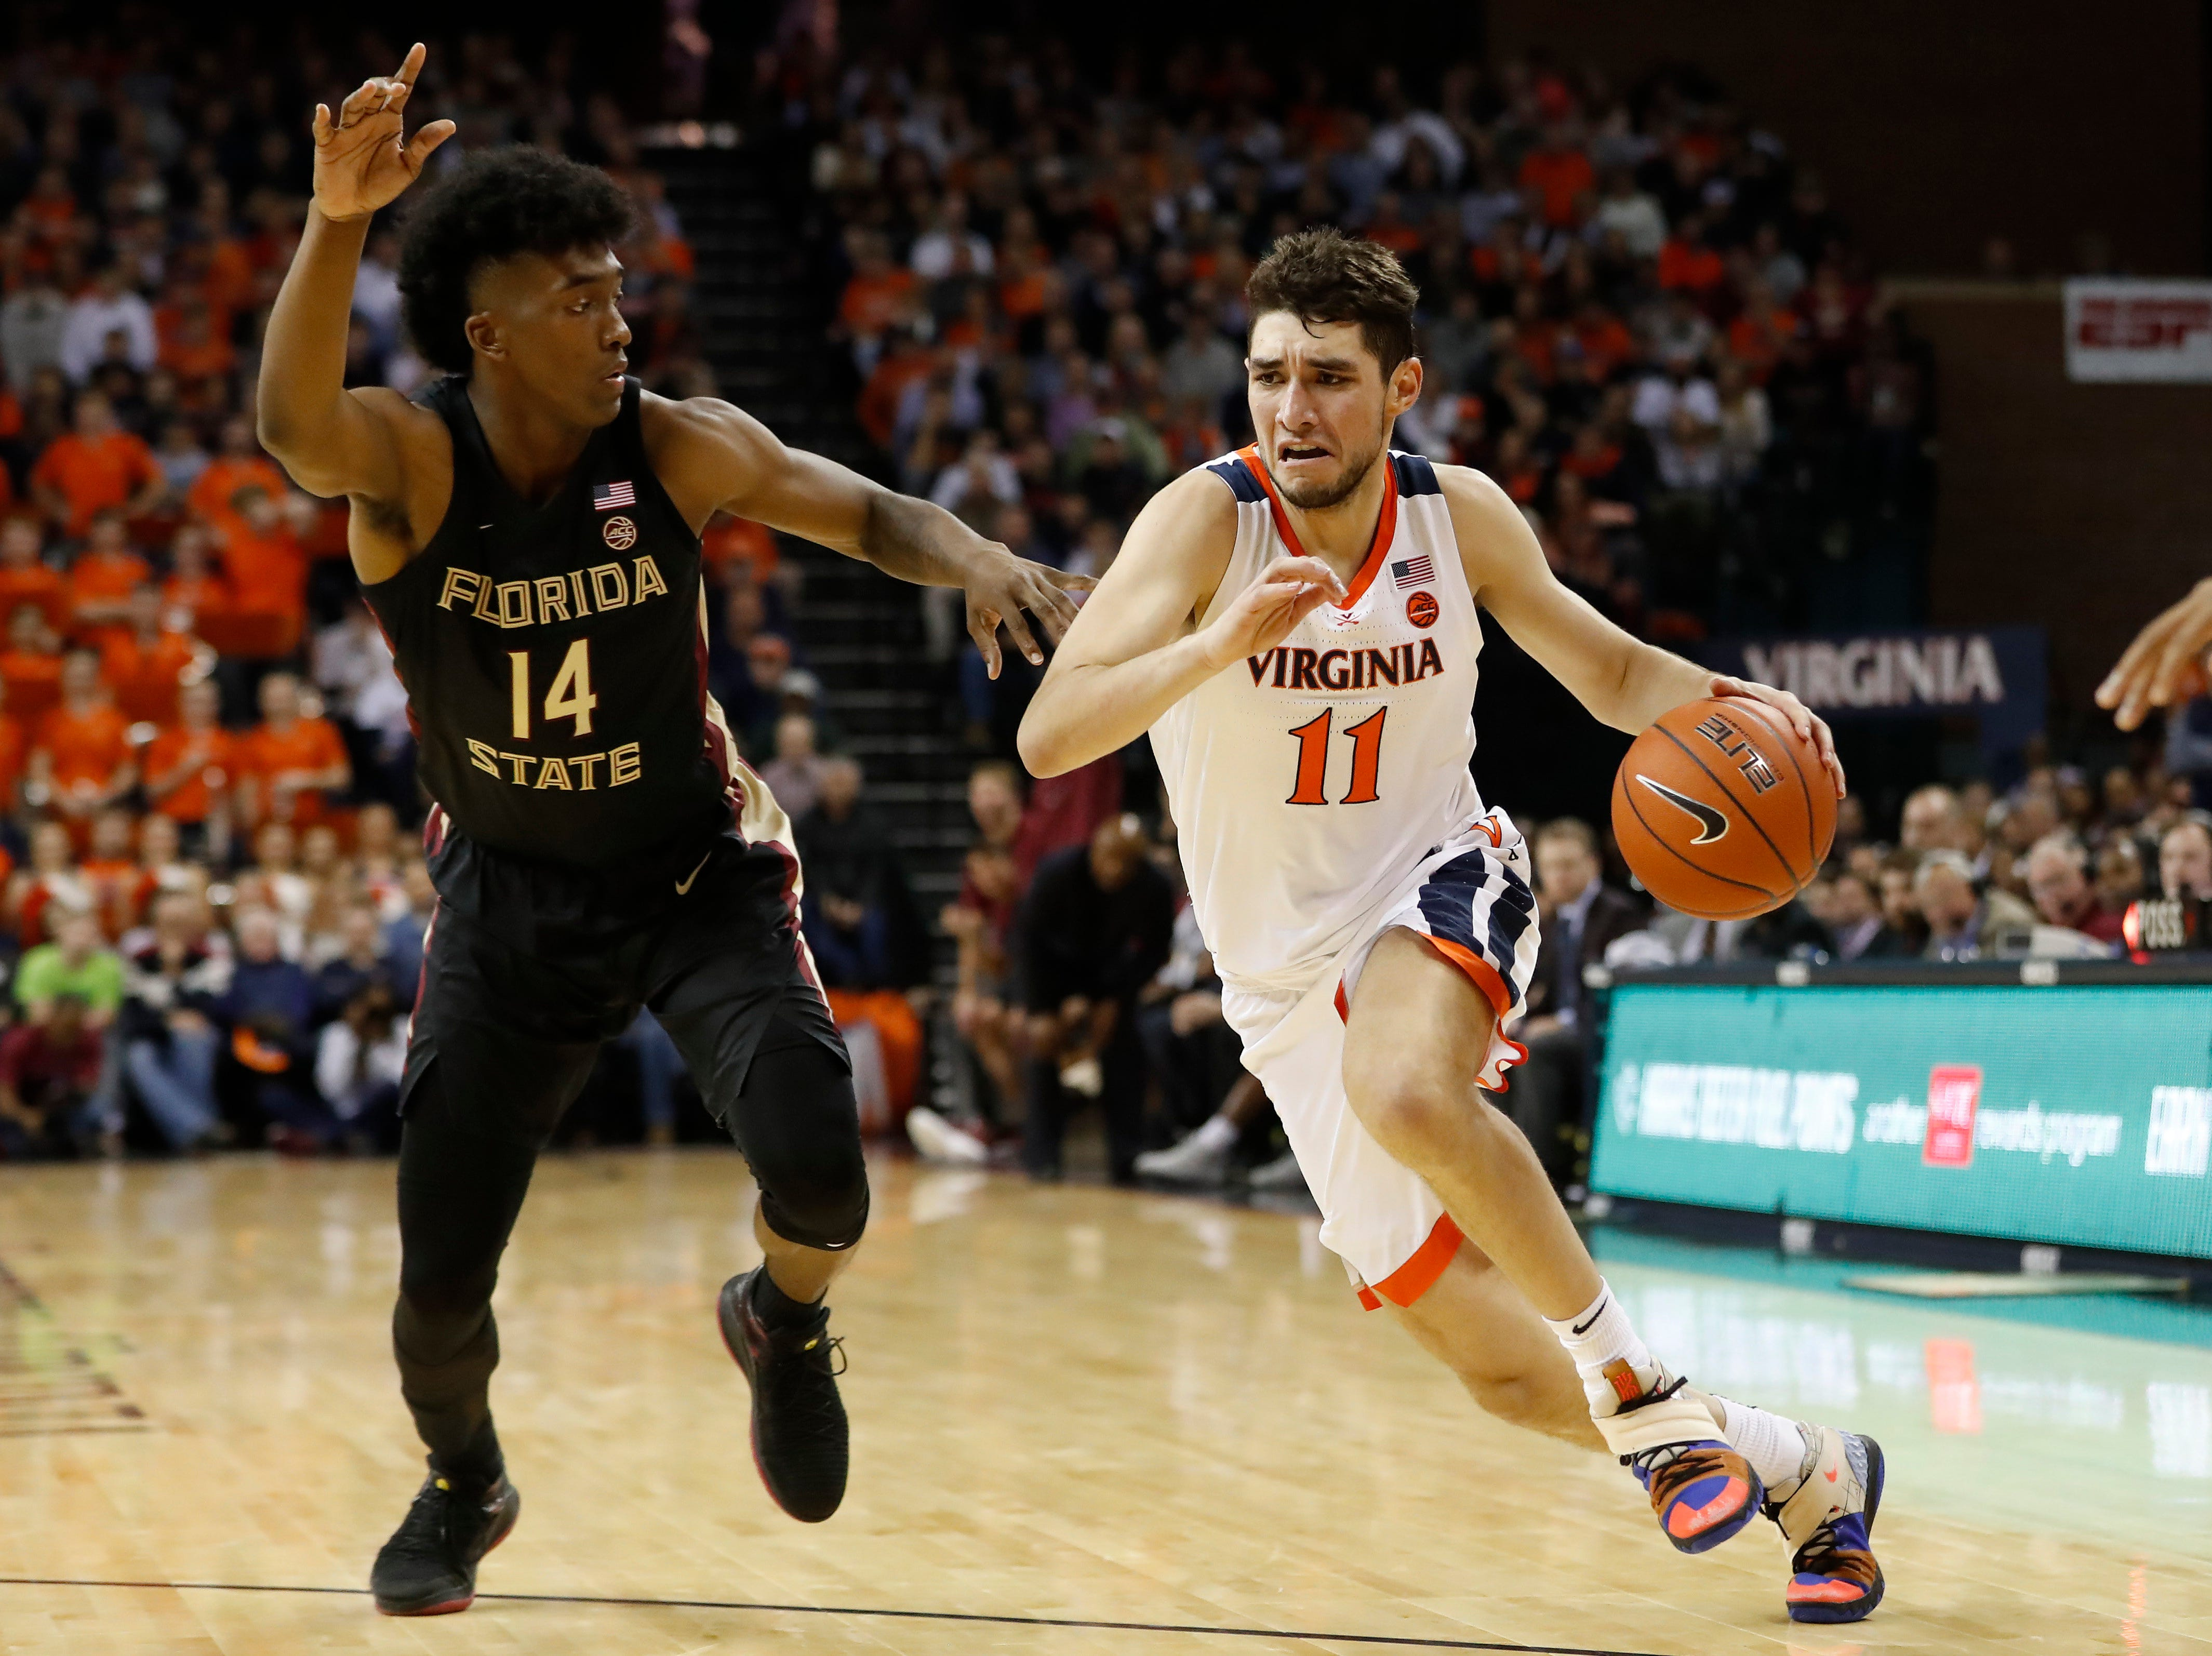 Jan 5, 2019; Charlottesville, VA, USA; Virginia Cavaliers guard Ty Jerome (11) drives to the basket as Florida State Seminoles guard Terance Mann (14) defends in the second half at John Paul Jones Arena. Mandatory Credit: Geoff Burke-USA TODAY Sports